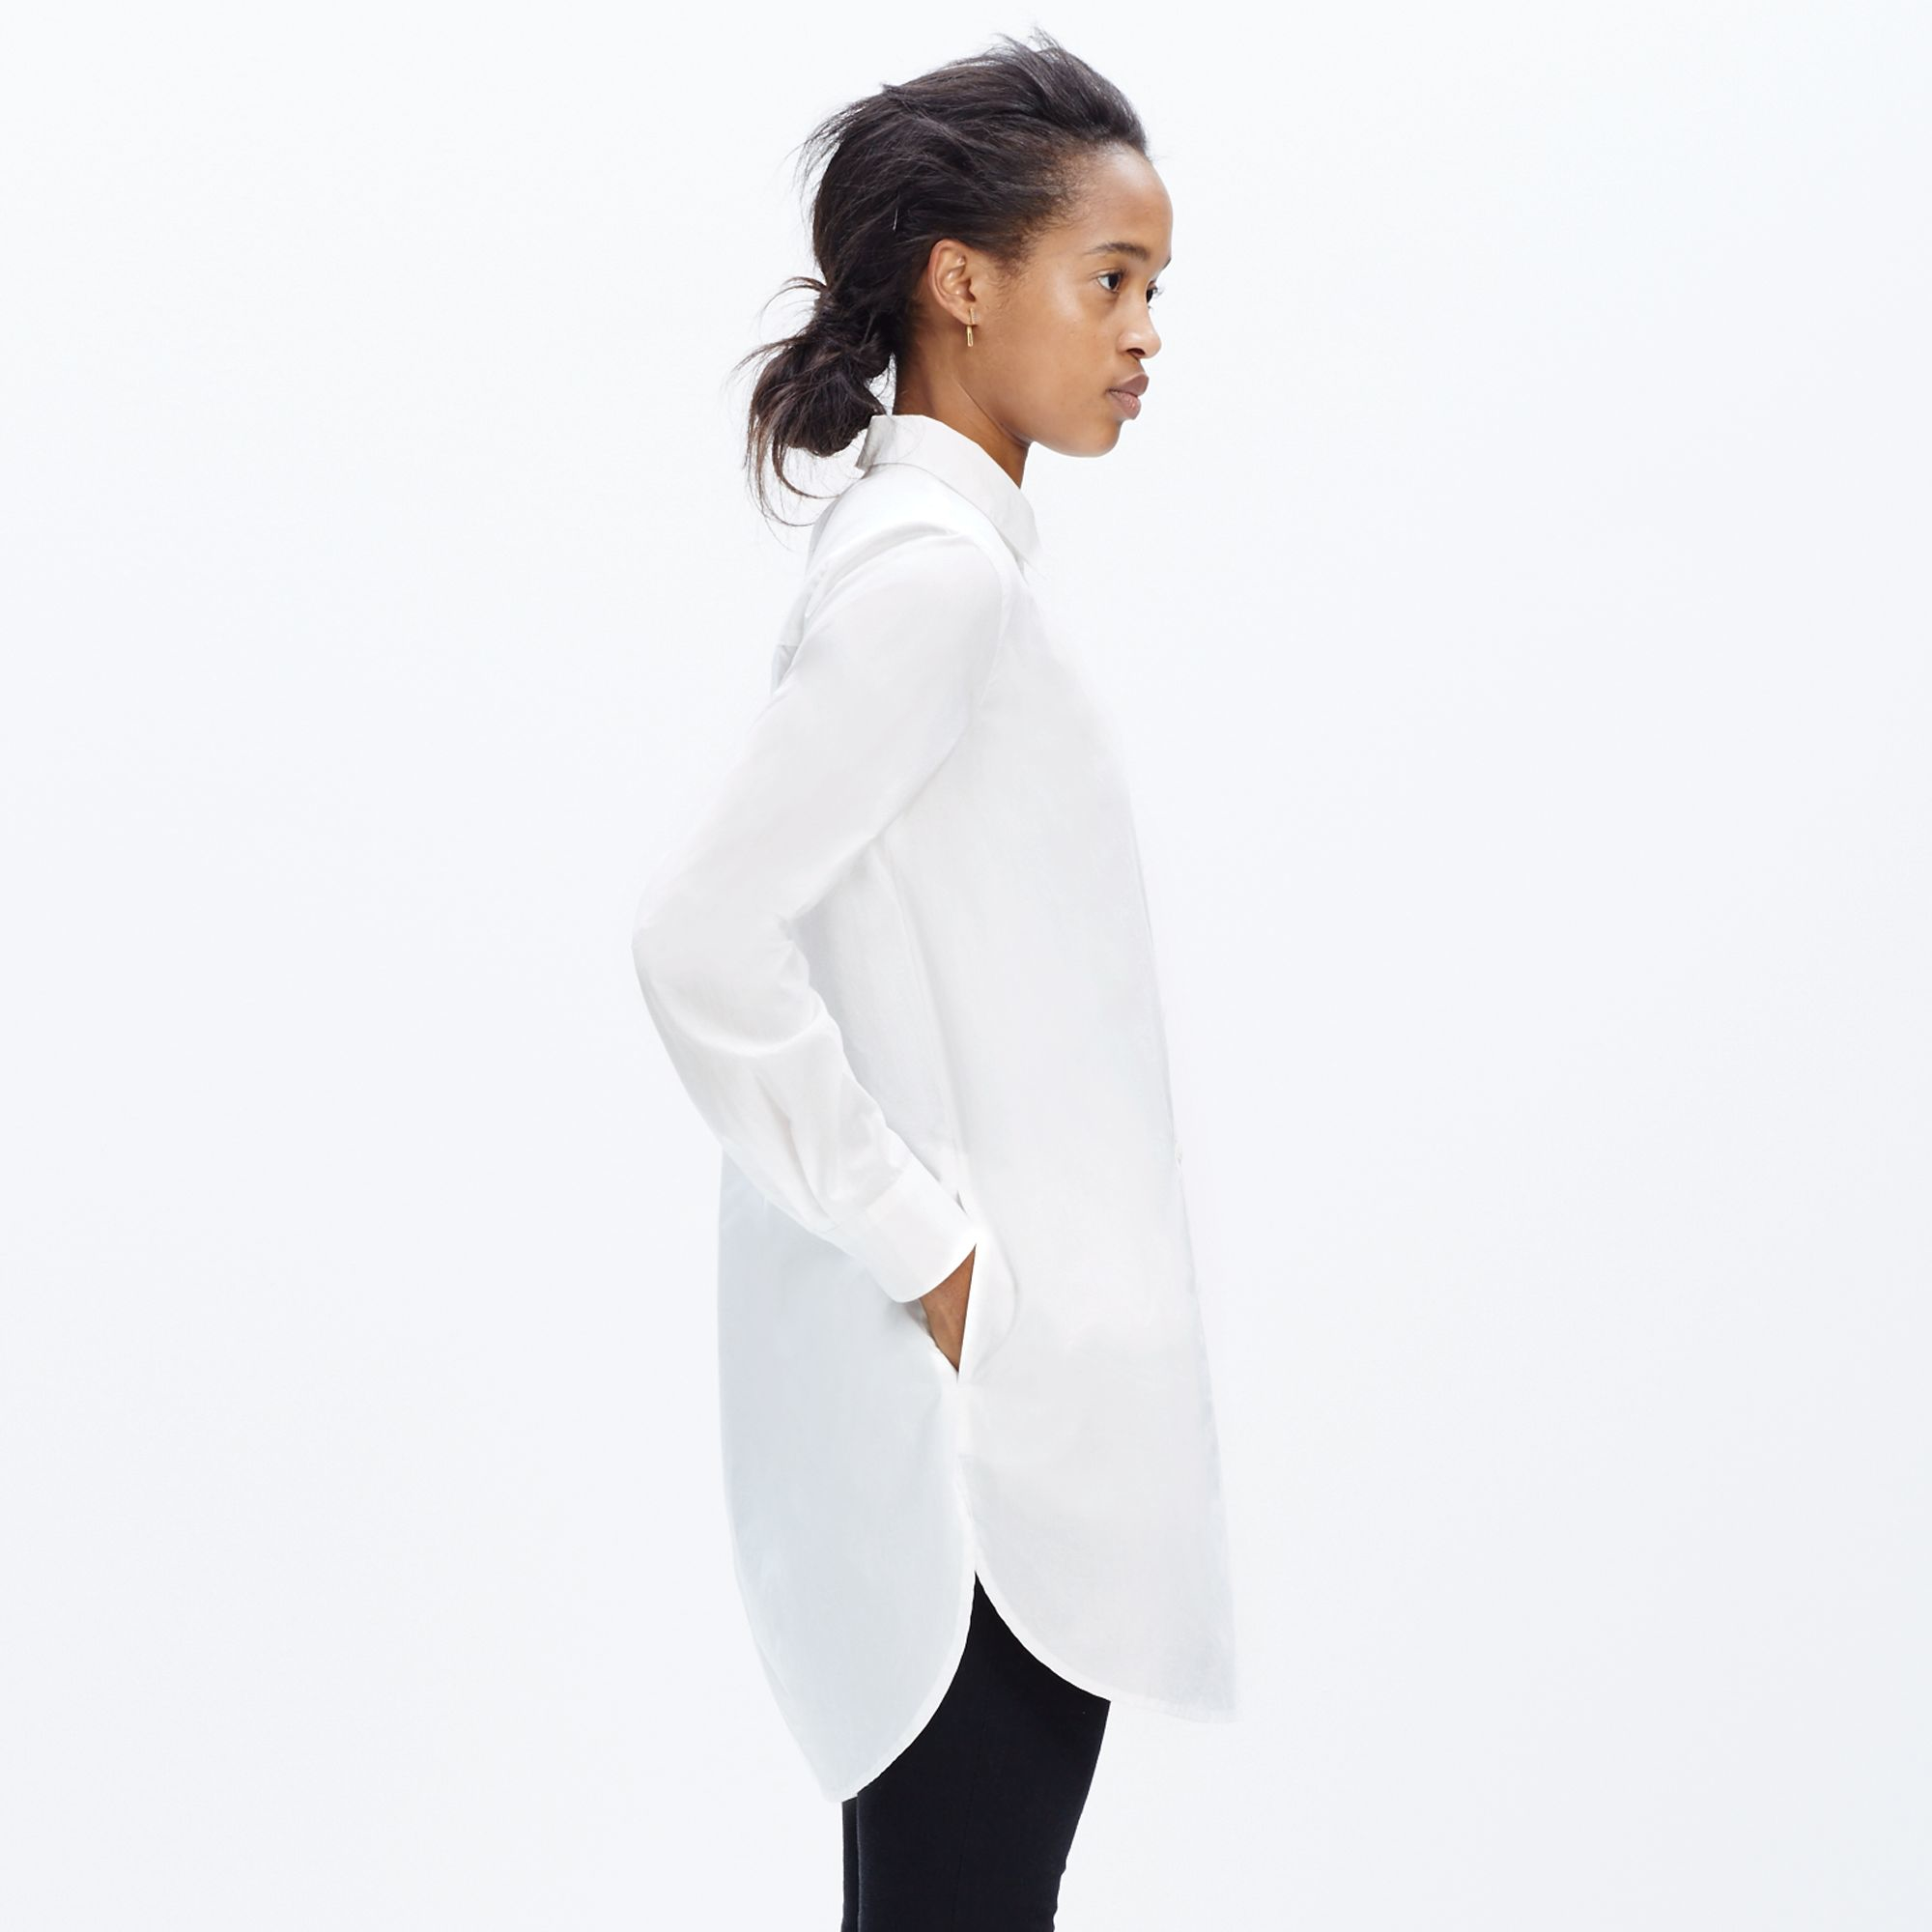 Enjoy free shipping and easy returns every day at Kohl's. Find great deals on Womens White Button-Down Shirts Shirts & Blouses at Kohl's today!